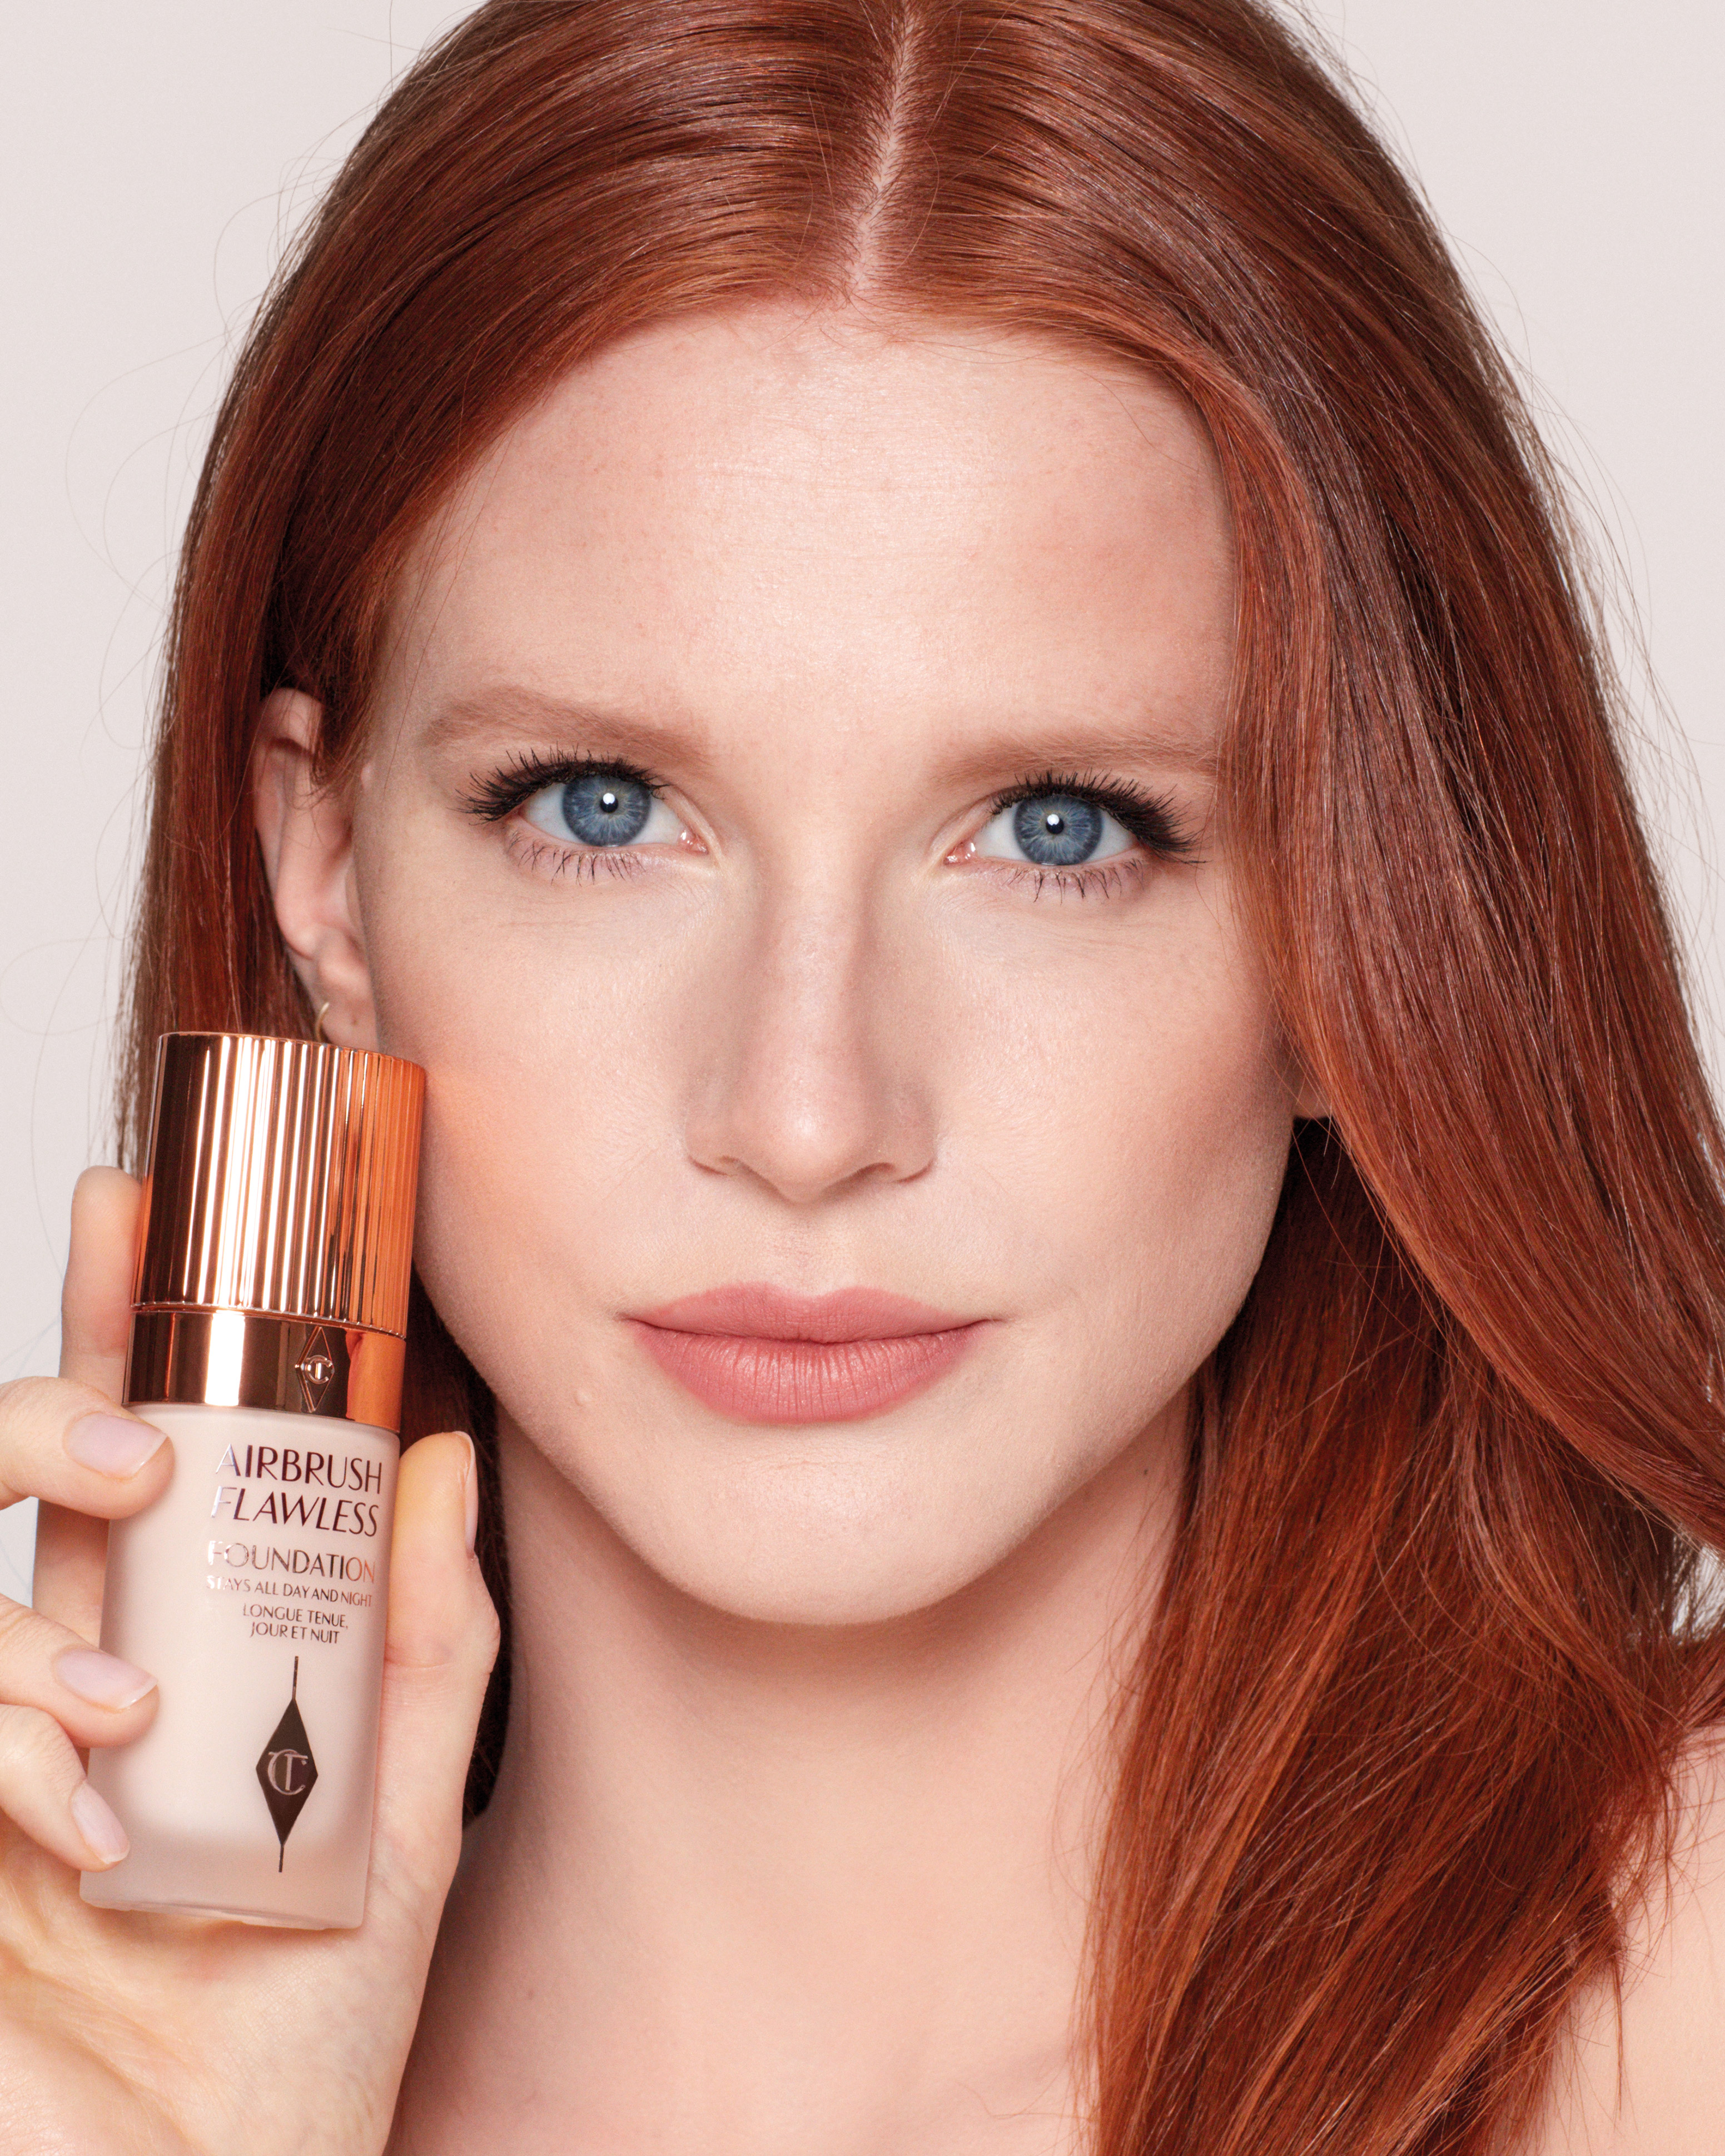 Charlotte Tilbury Airbrush Flawless Foundation shade 2 Cool